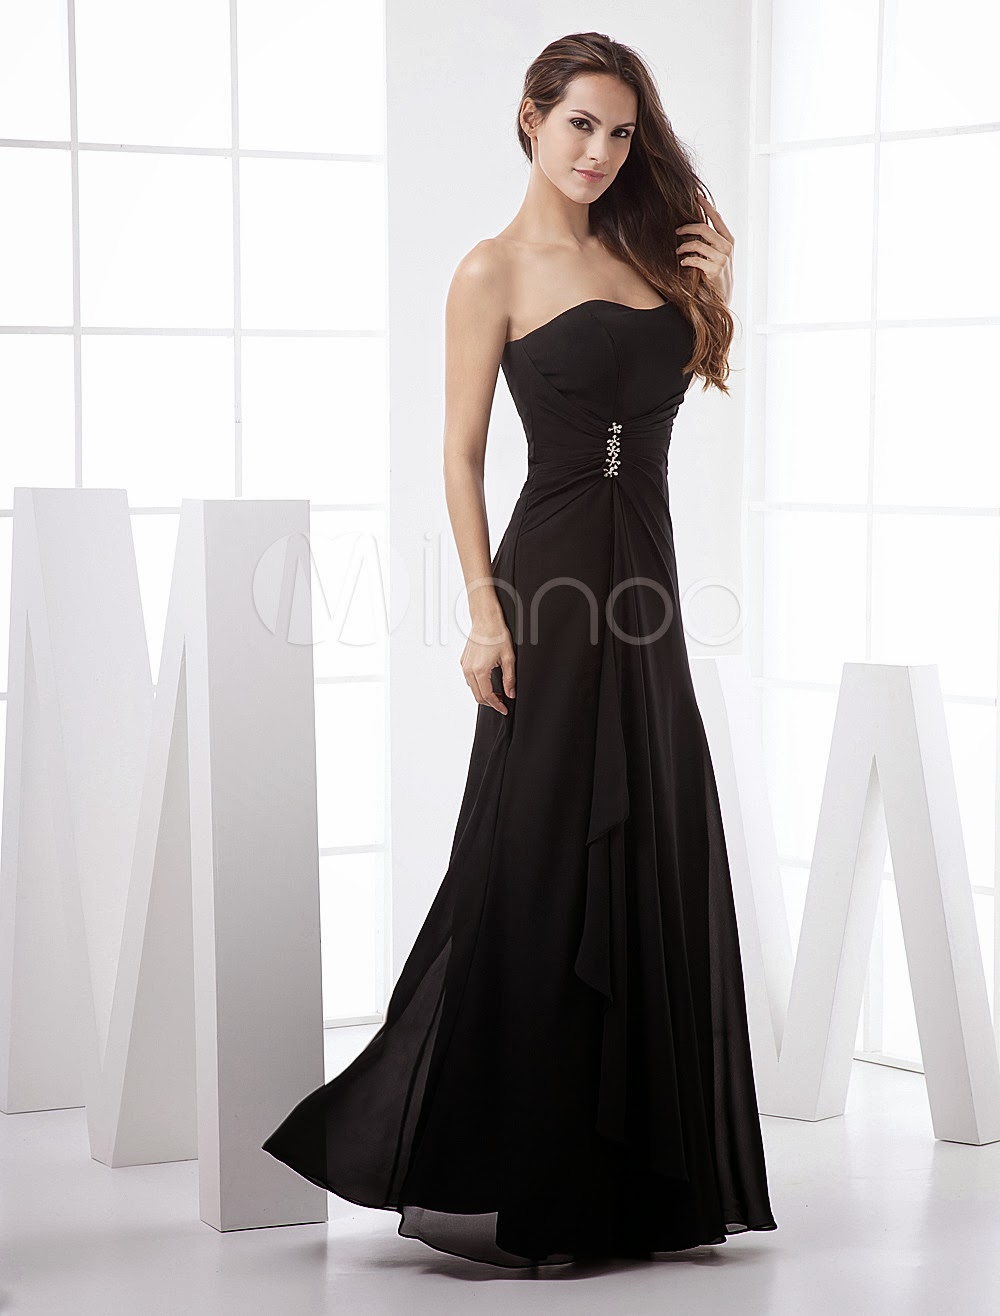 China Wholesale Dresses - Slim Black Chiffon Strapless Floor Length Bridesmaid Dress